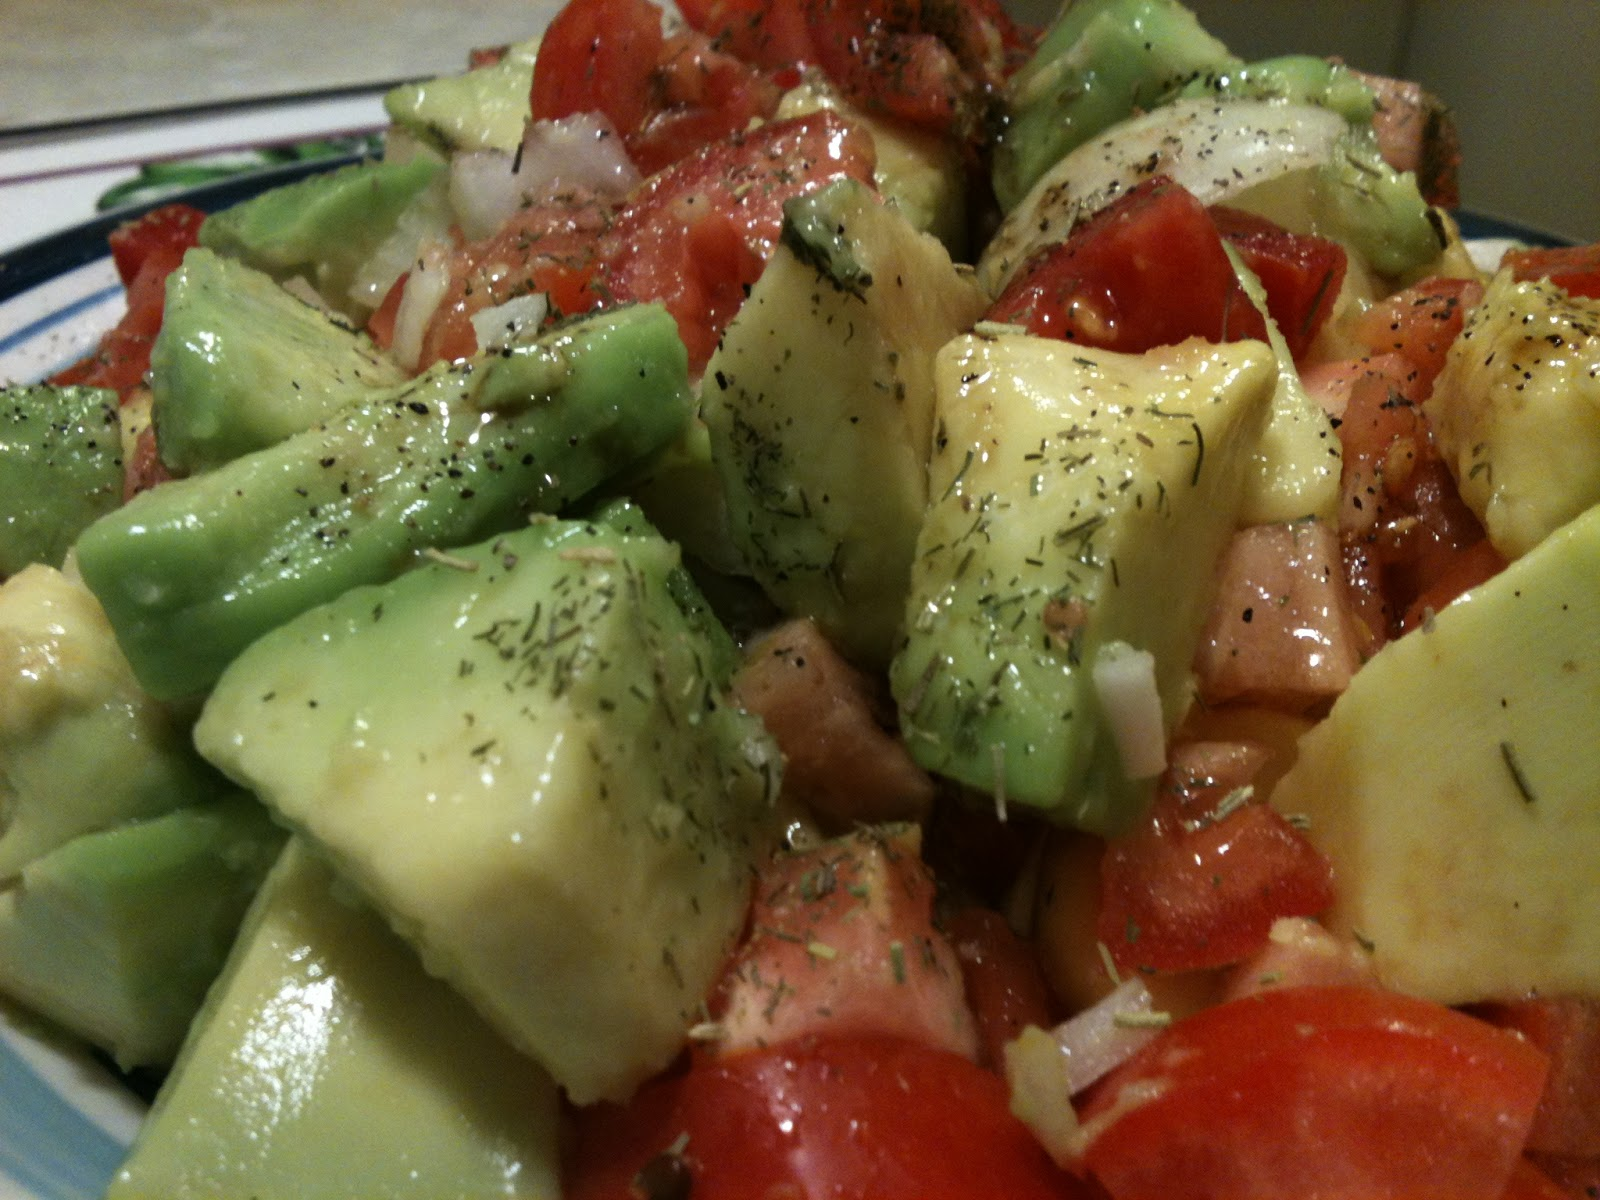 bacon and avocado black bean avocado cucumber and tomato salad tomato ...